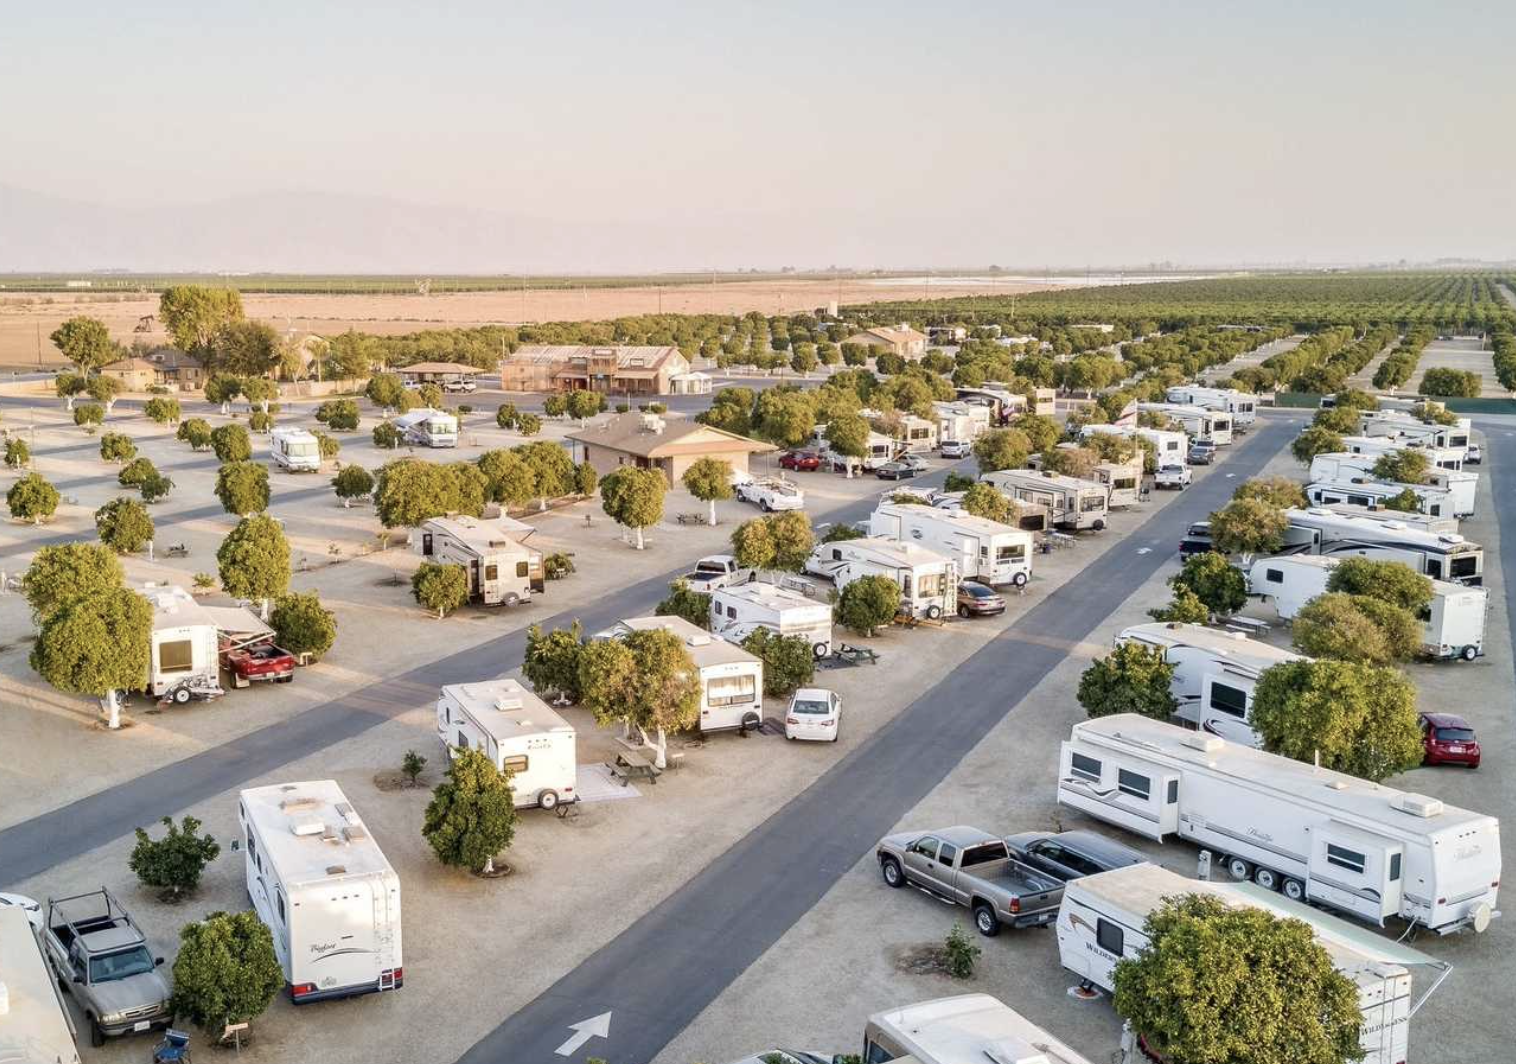 RVs parked between rows of orange trees in California